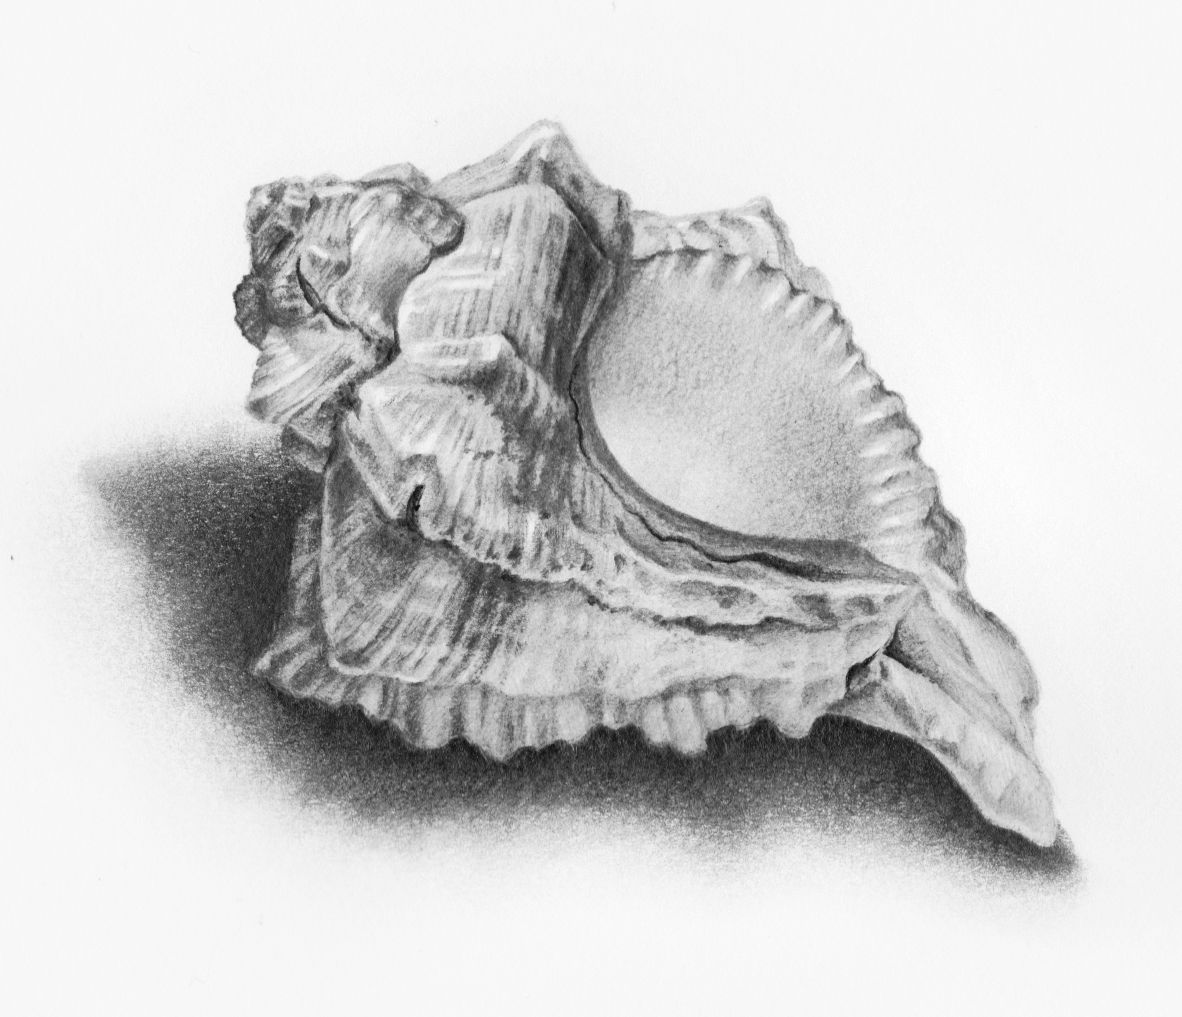 shells drawings - Google Search | shells - art | Pinterest ...